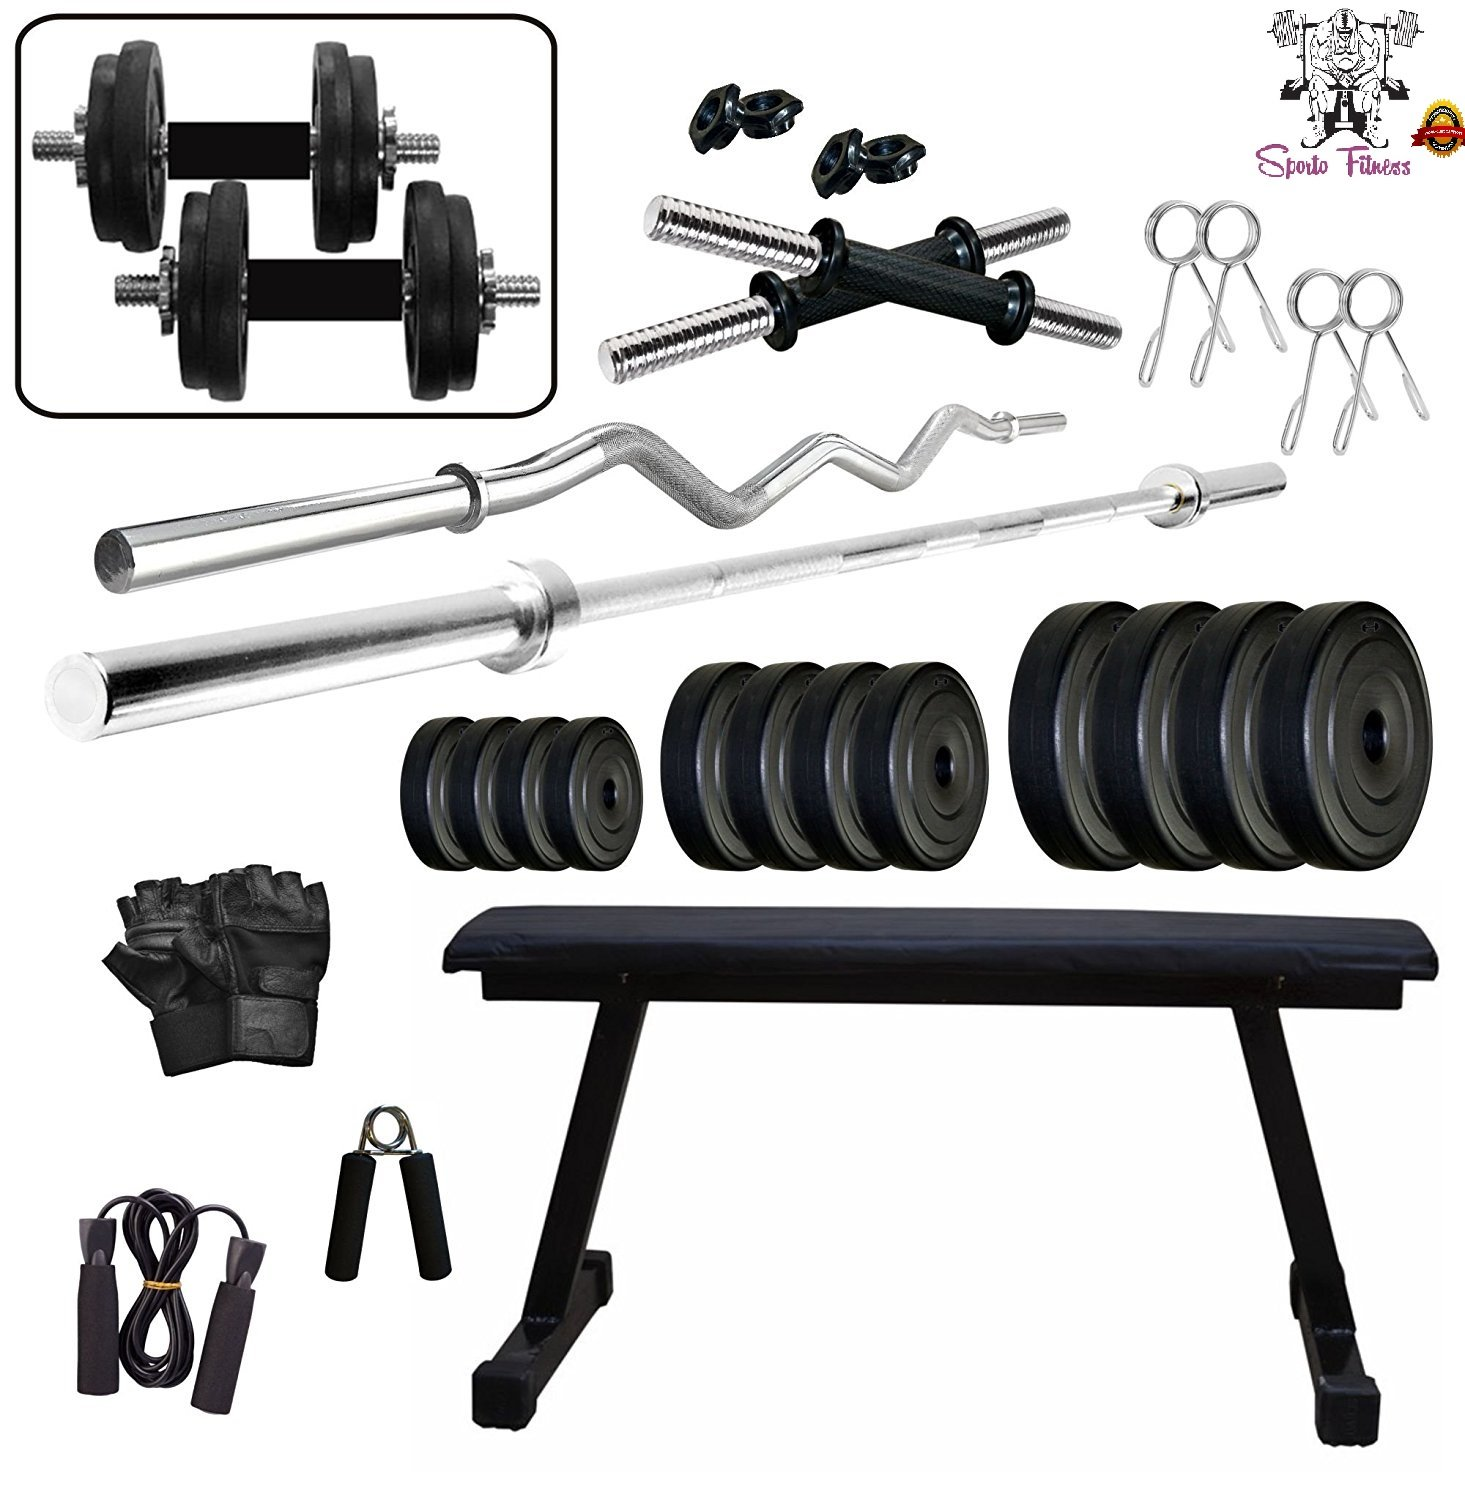 Sporto fitness beginners home gym equipments kg with bench